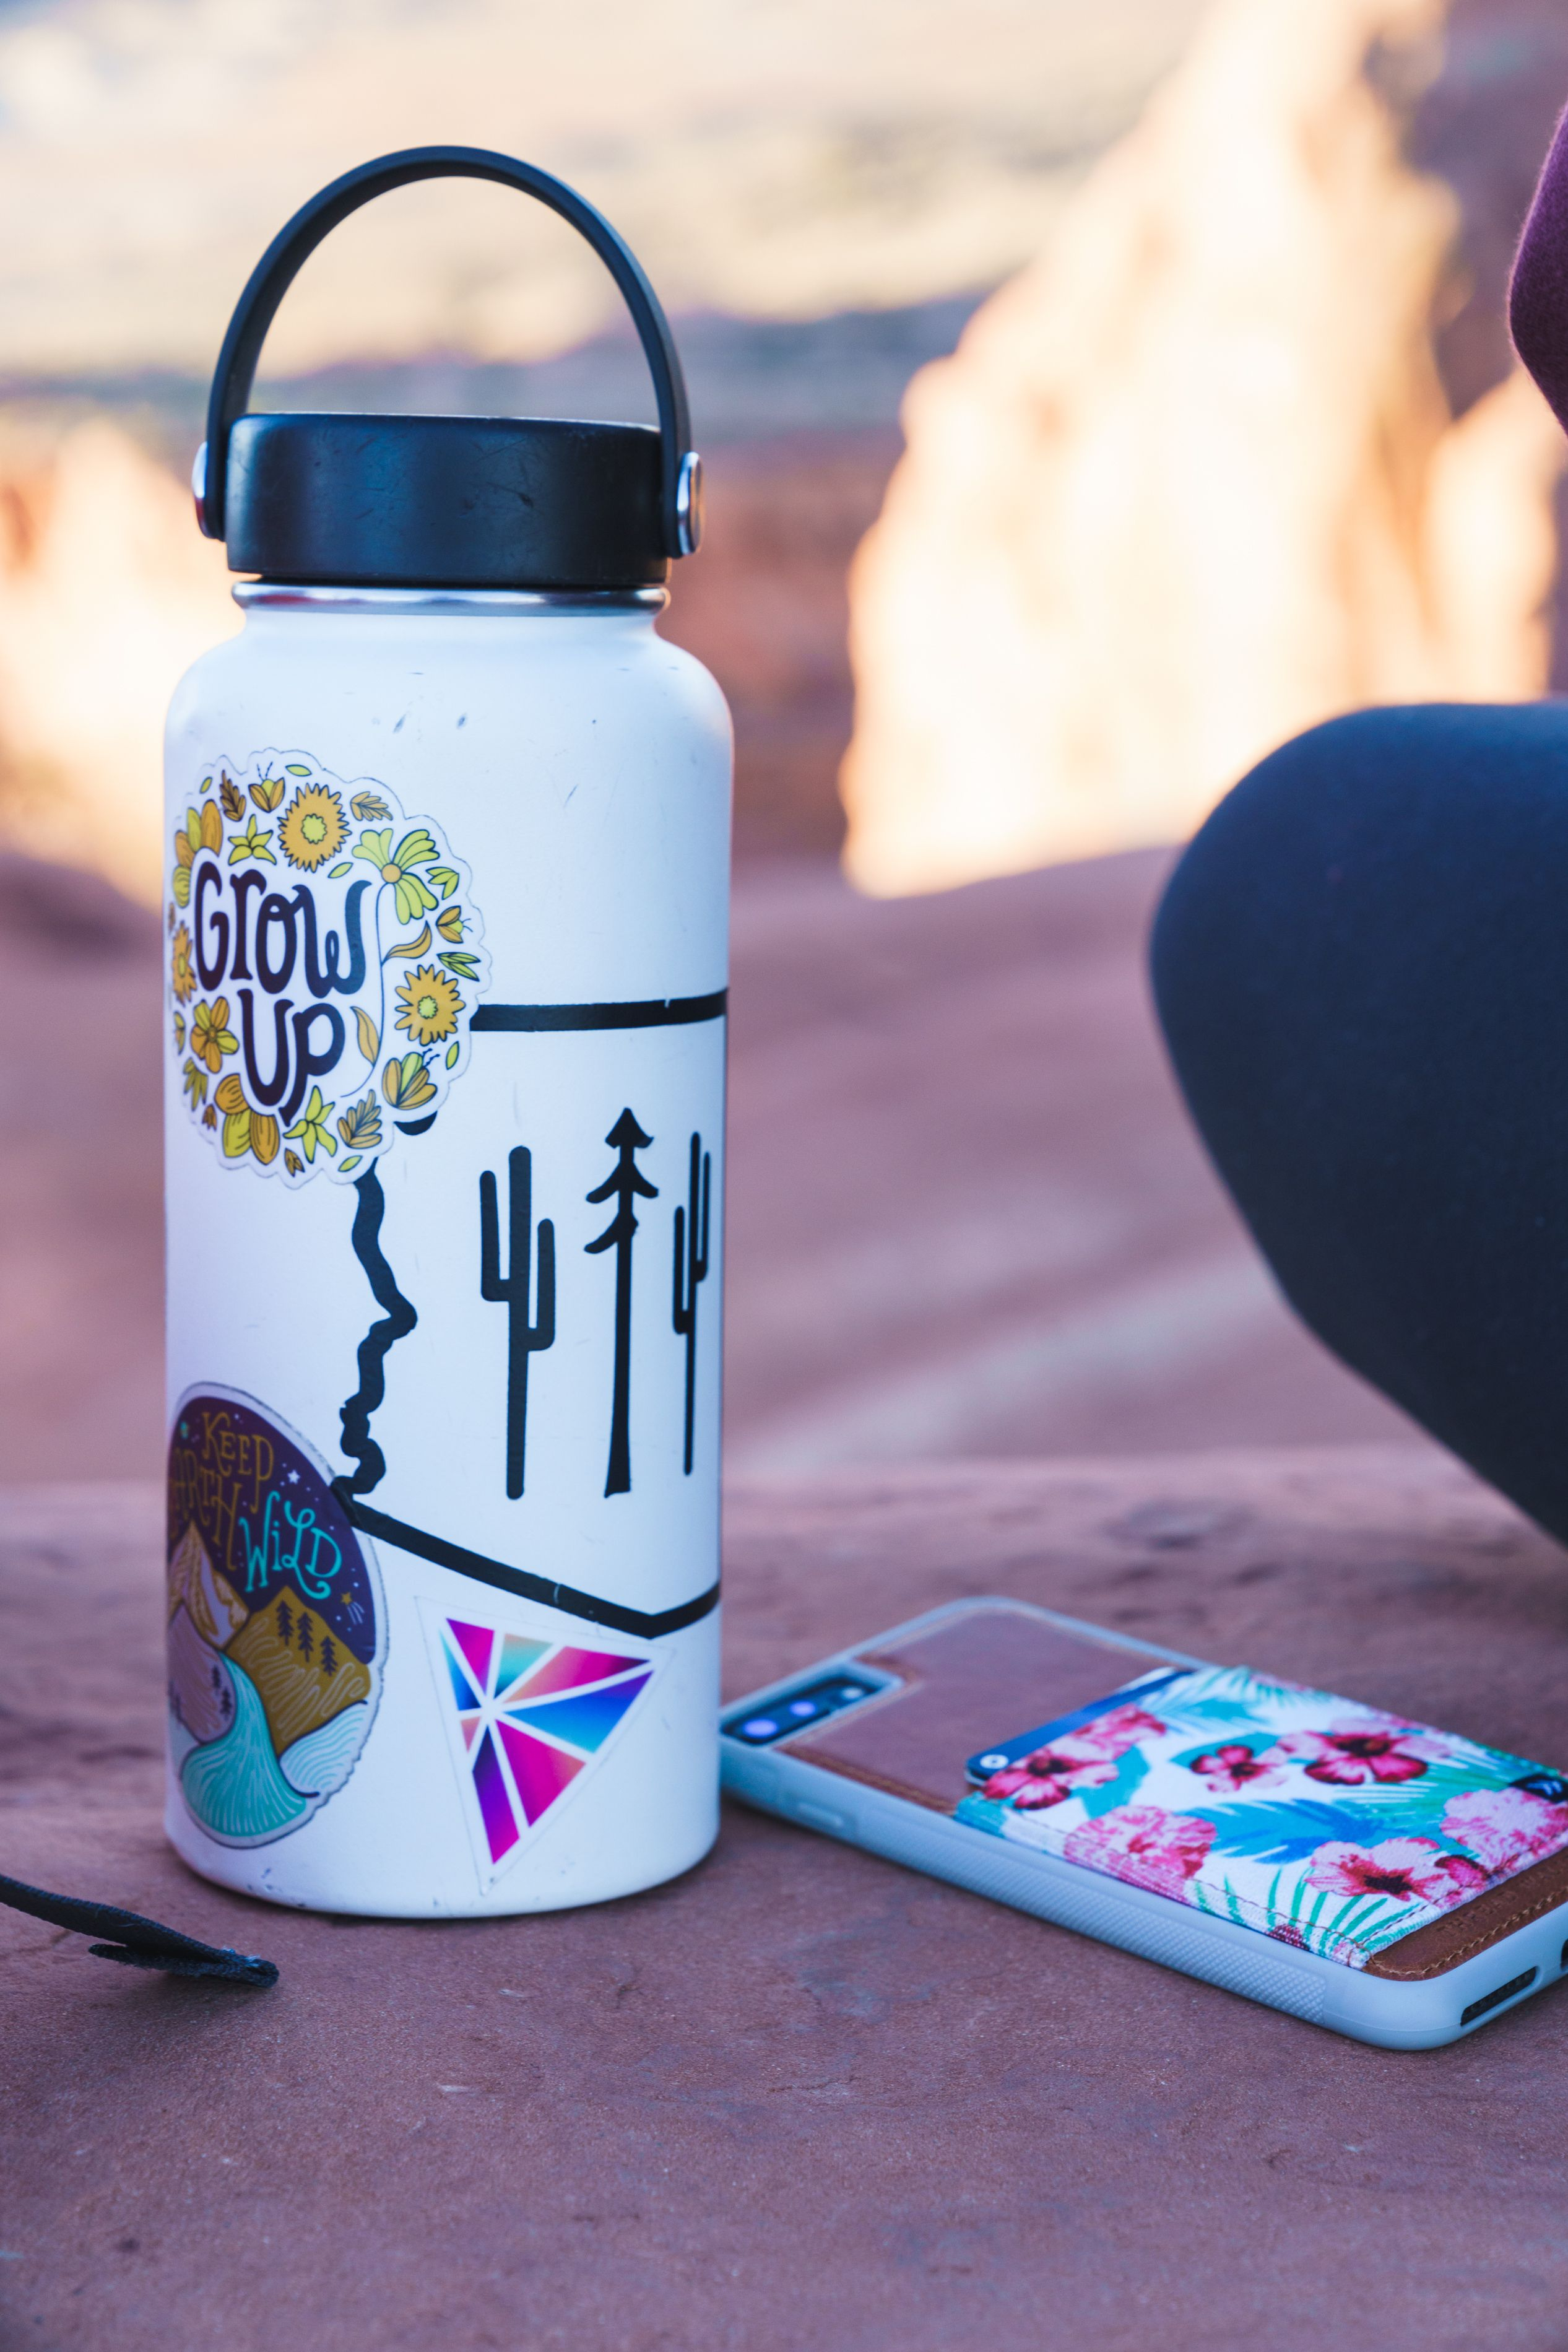 Covering it with your favorite stickers weve got lots of outdoor inspired vinyl stickers so that your hydro flask will never be